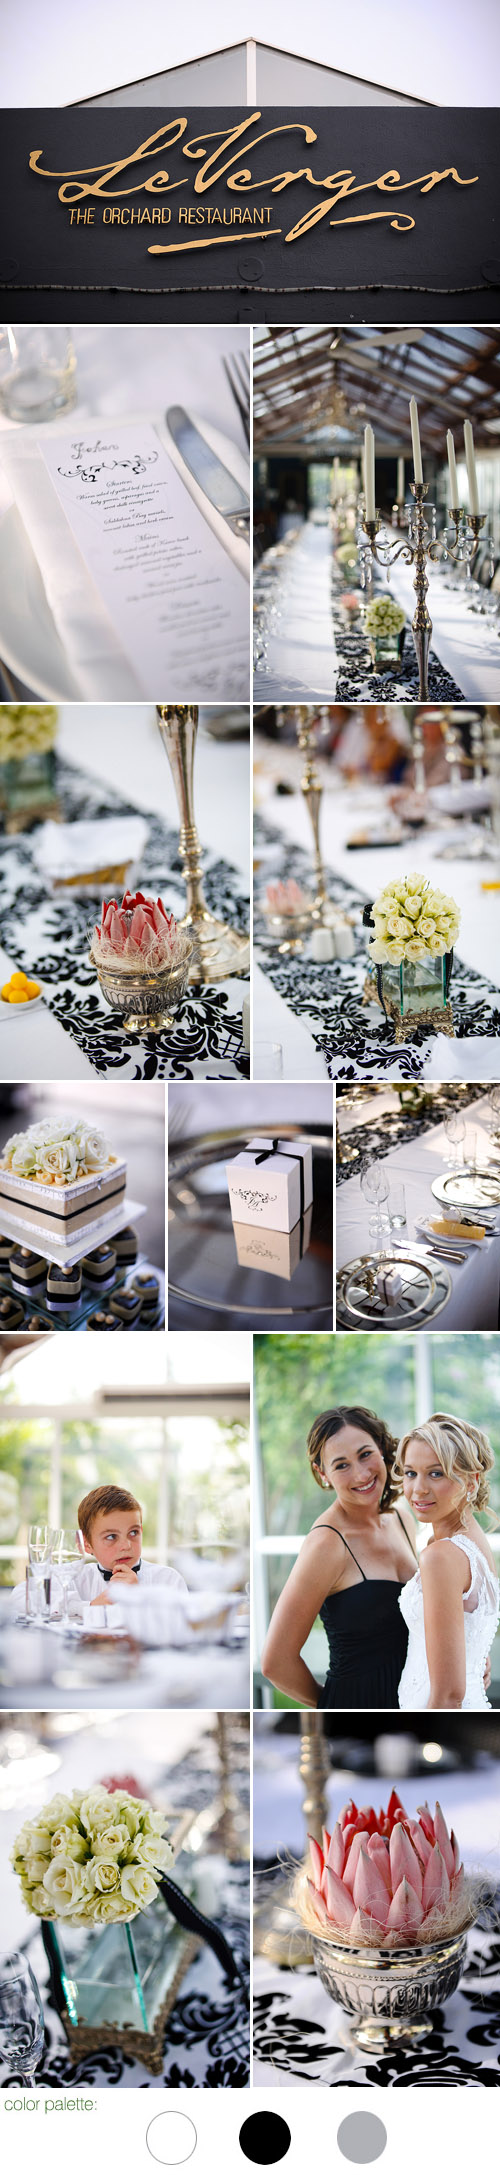 glamorous south african real wedding reception, black, white, gray and silver wedding color palette and wedding decor, images by Eric Uys